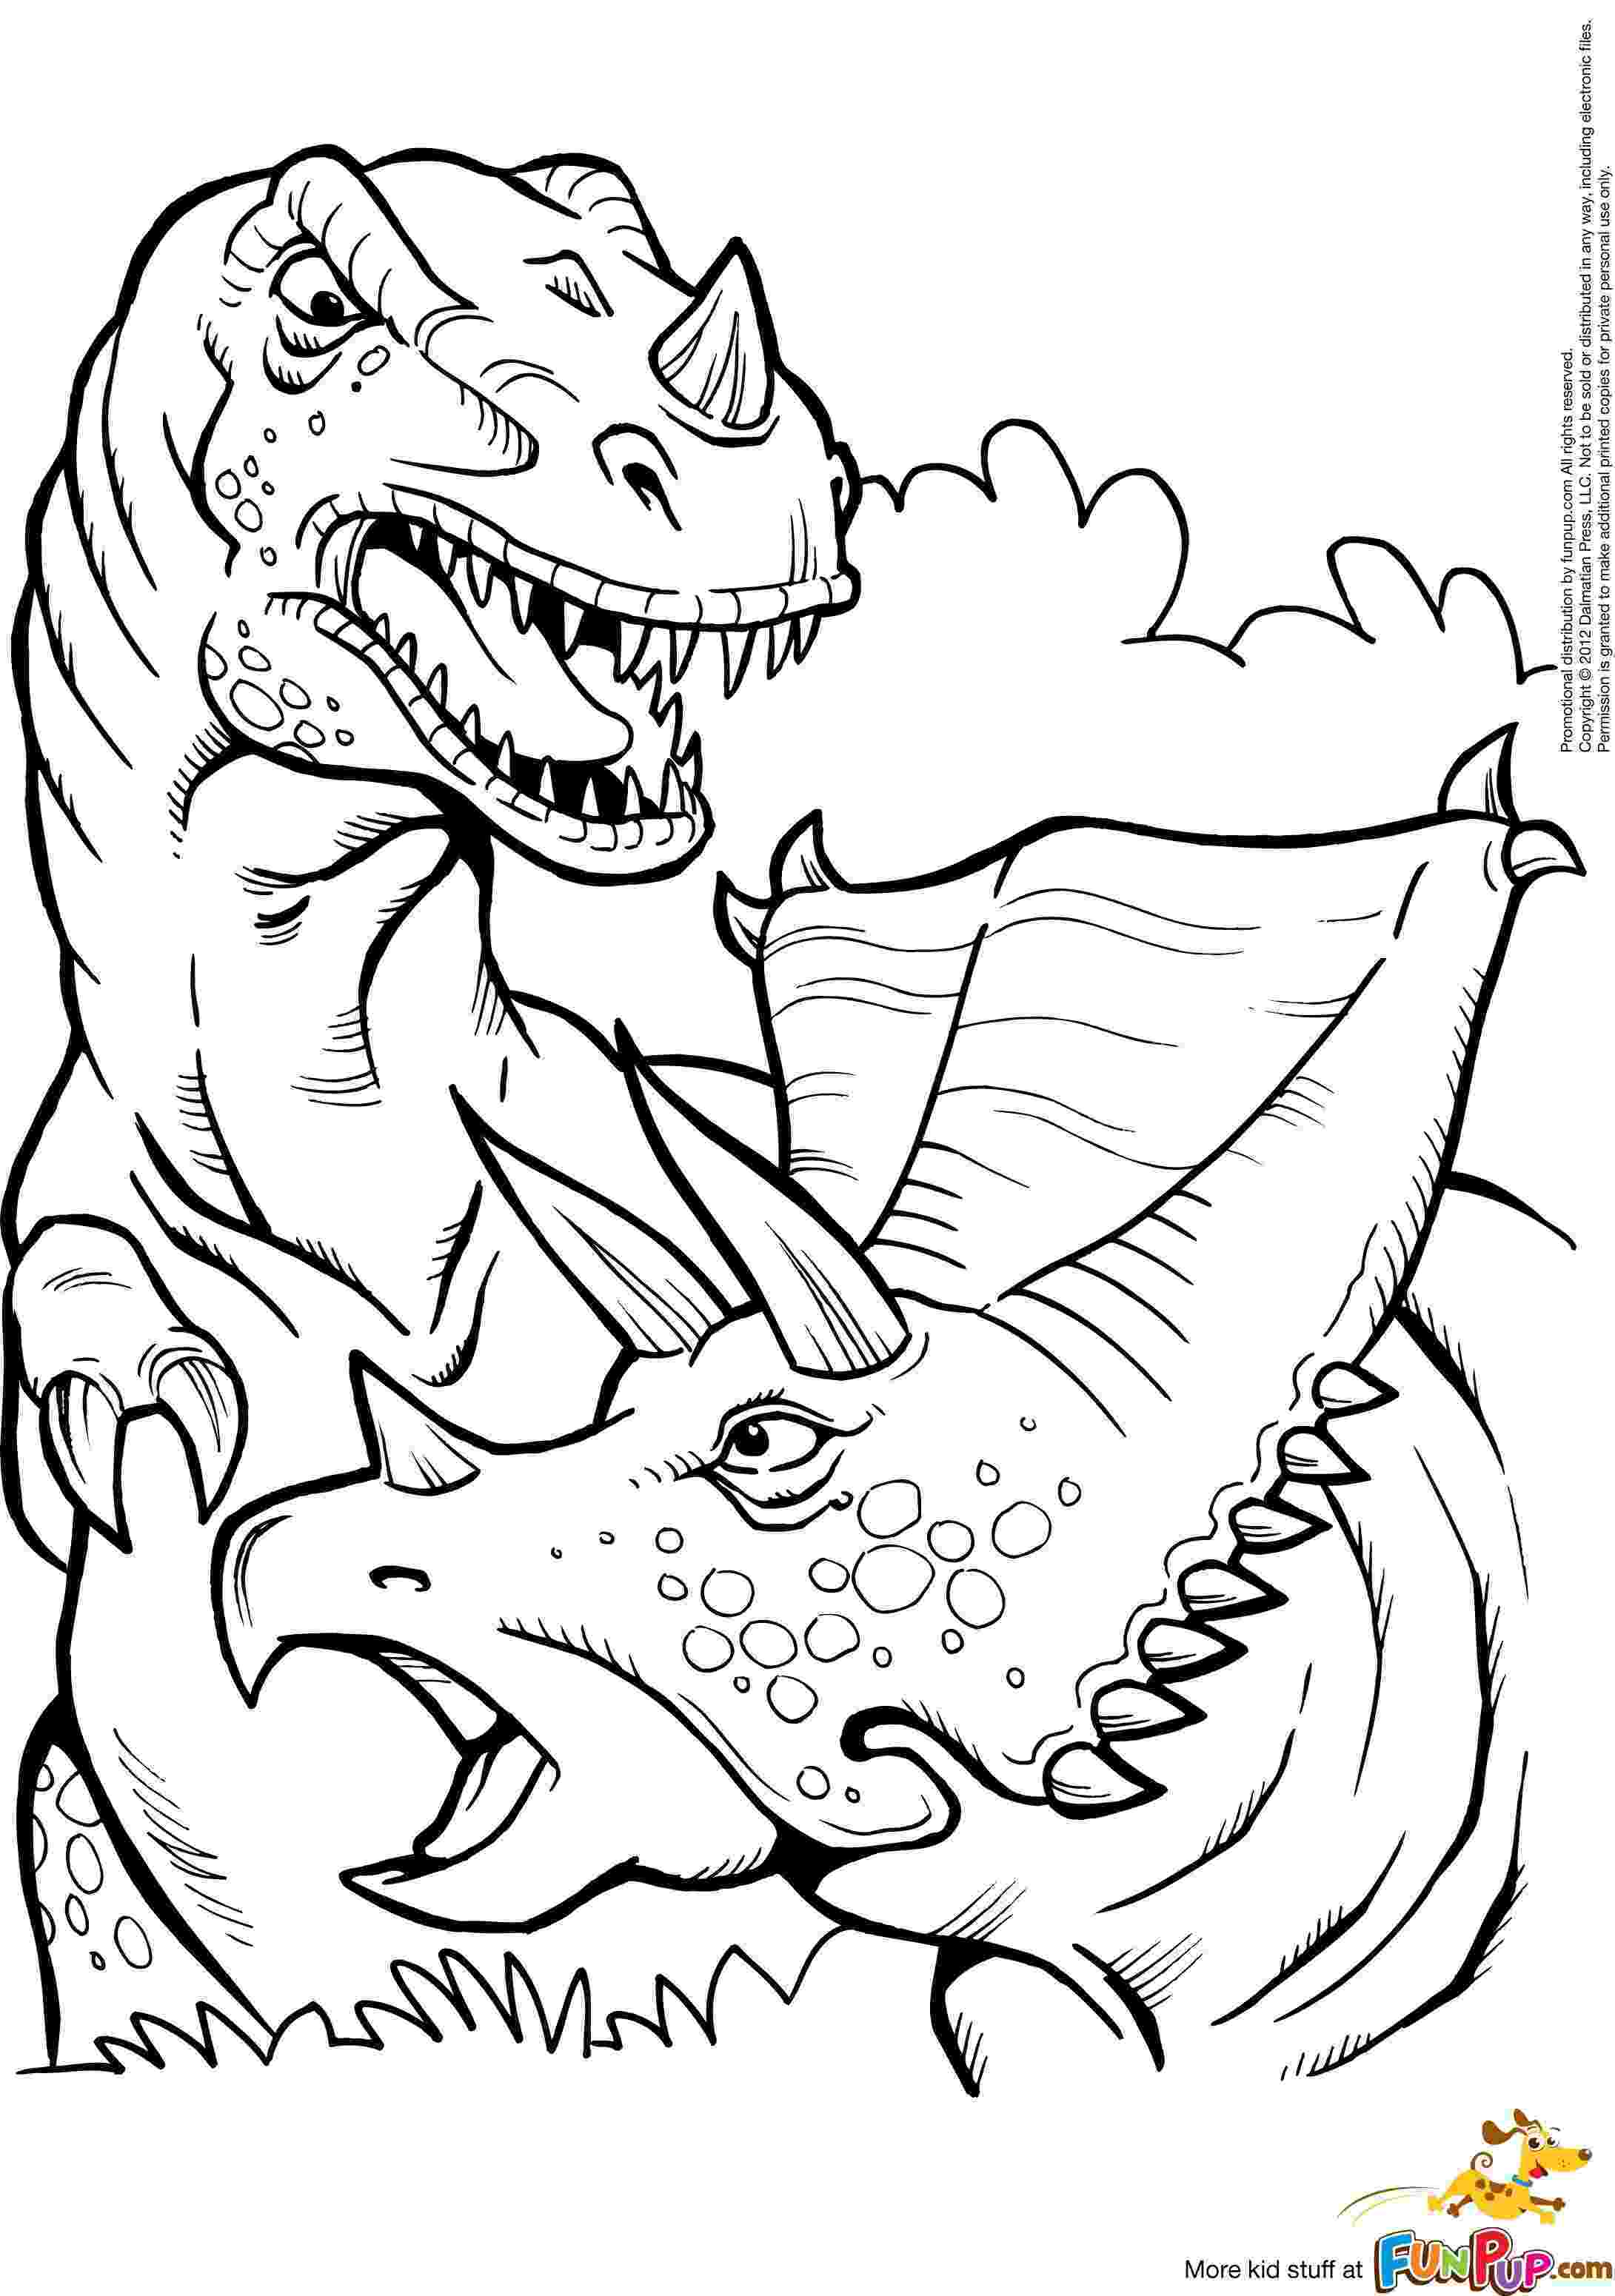 t rex coloring page print download dinosaur t rex coloring pages for kids rex t page coloring